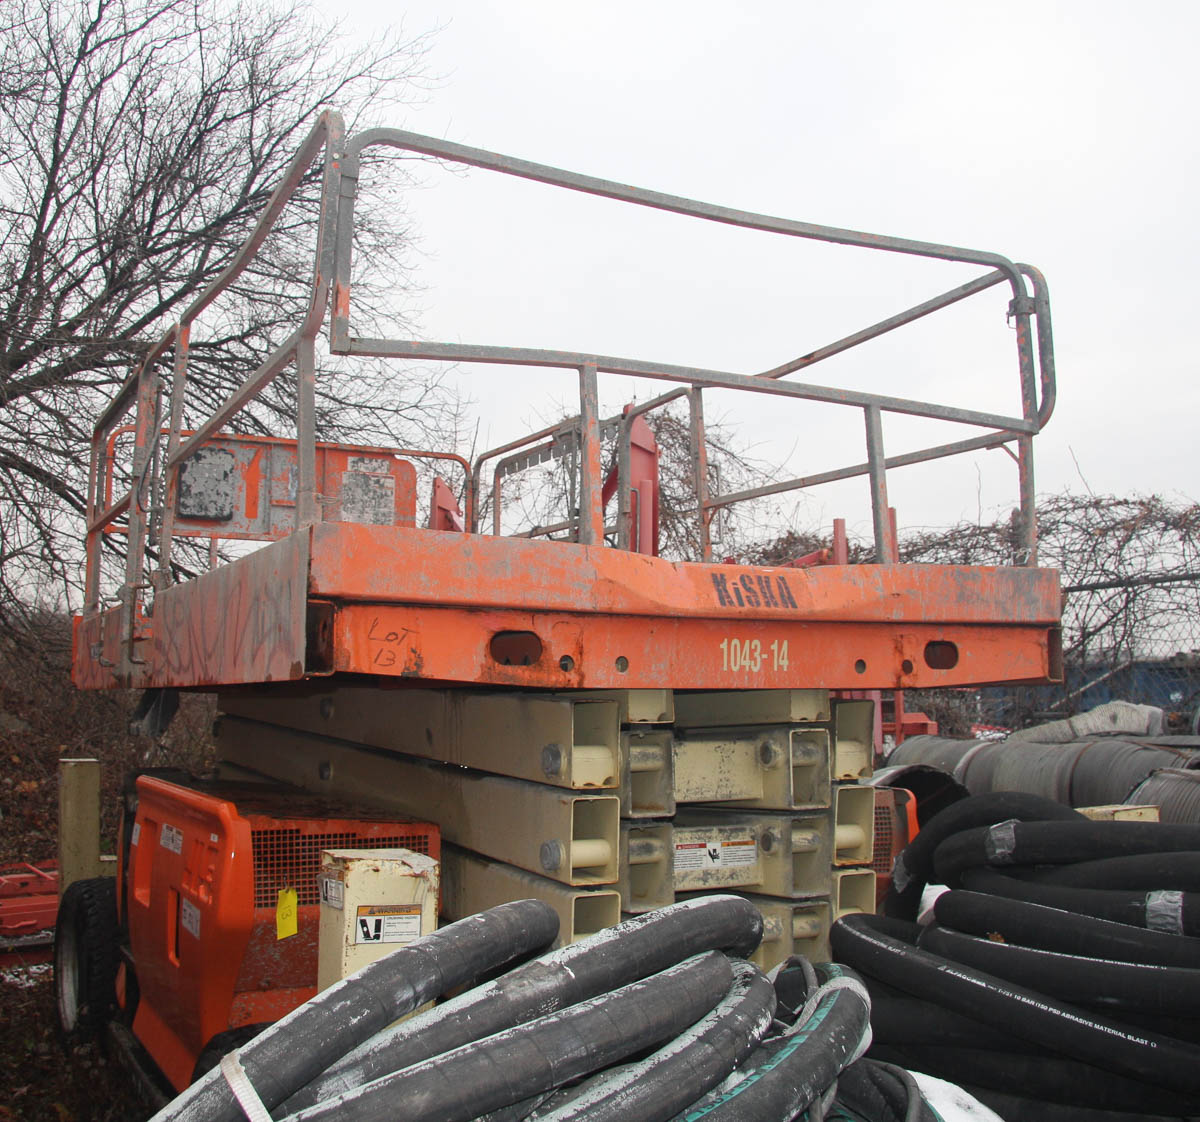 2006 JLG 4394RT ROUGH TERRAIN SCISSOR LIFT, WITH 43' MAX PLATFORM HEIGHT, 1500# CAPACITY, S/N: - Image 10 of 10